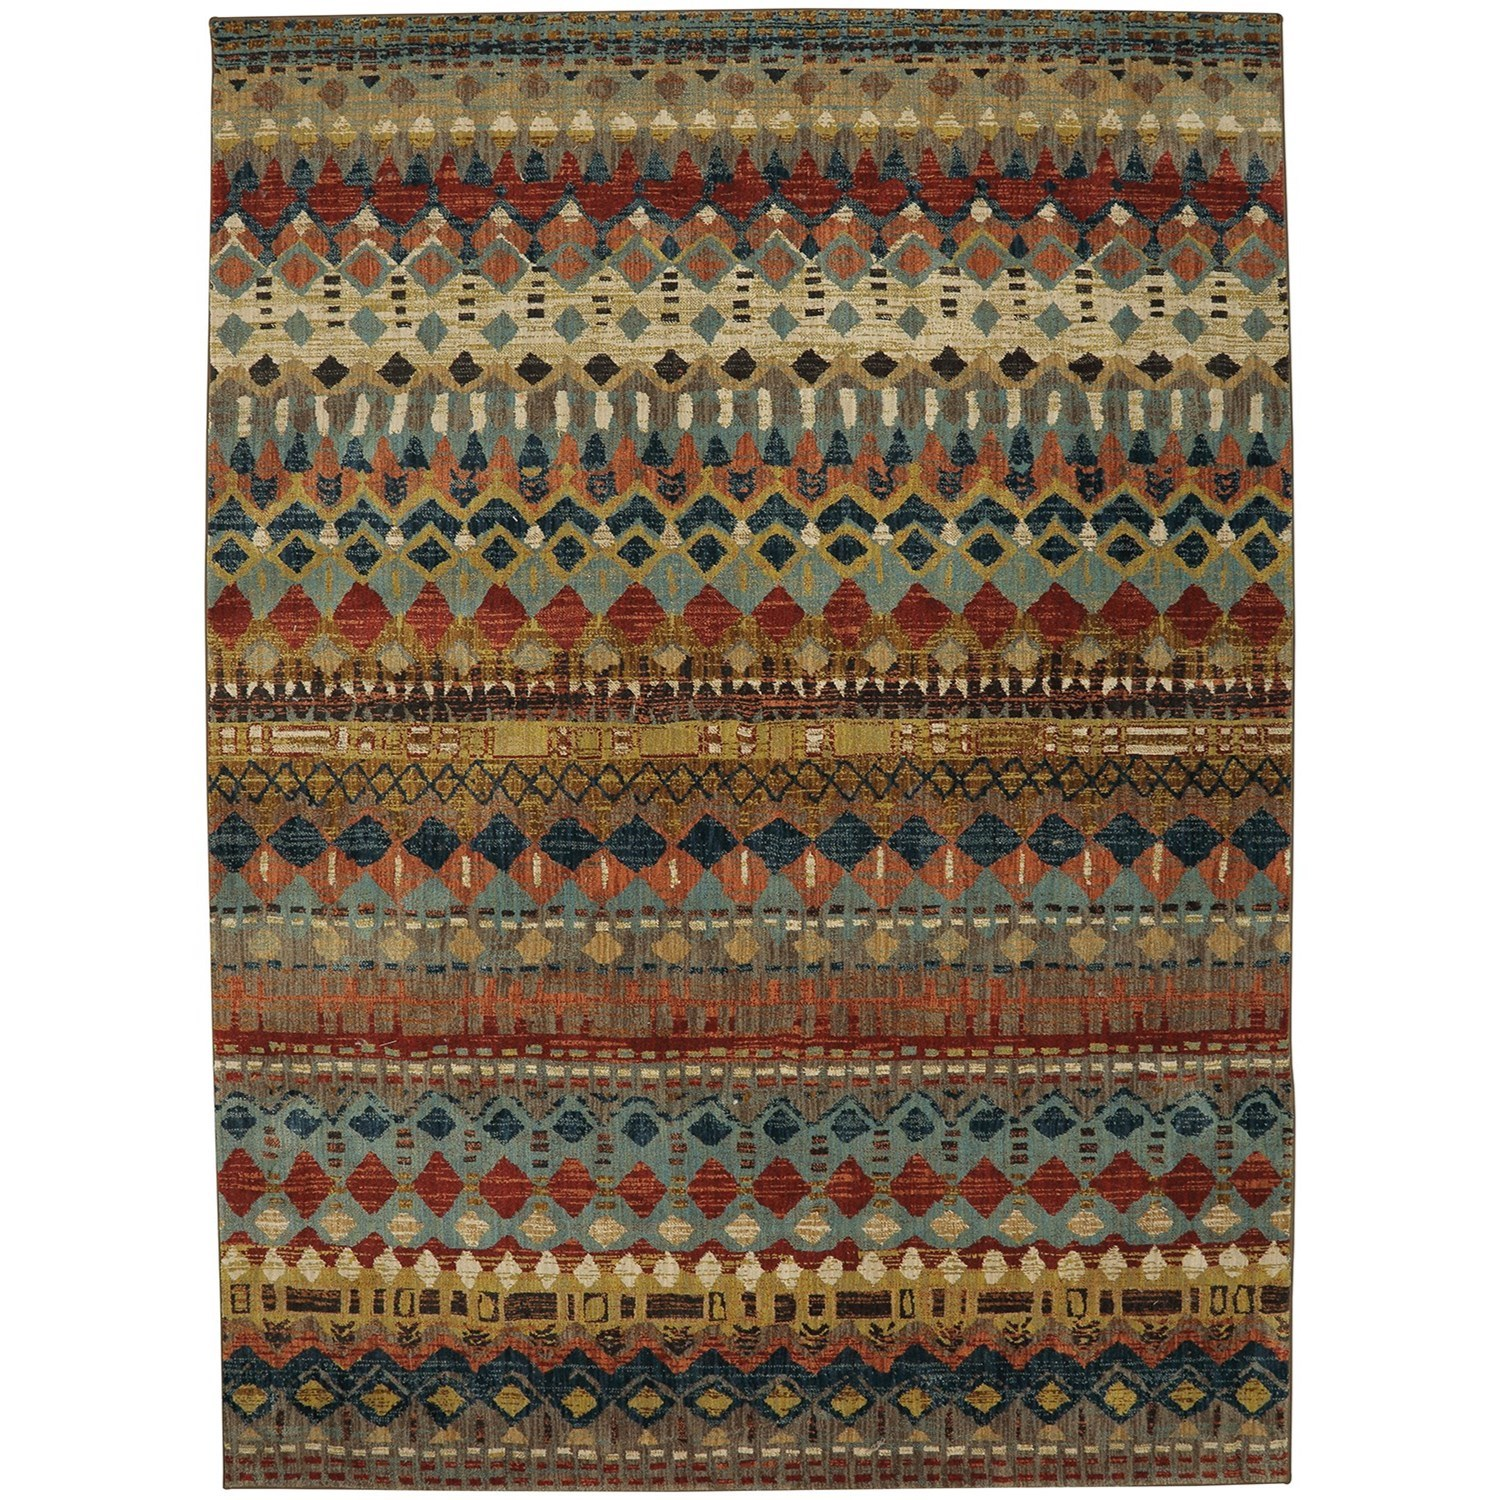 Spice Market 8'x11' Rectangle Geometric Area Rug by Karastan Rugs at Darvin Furniture